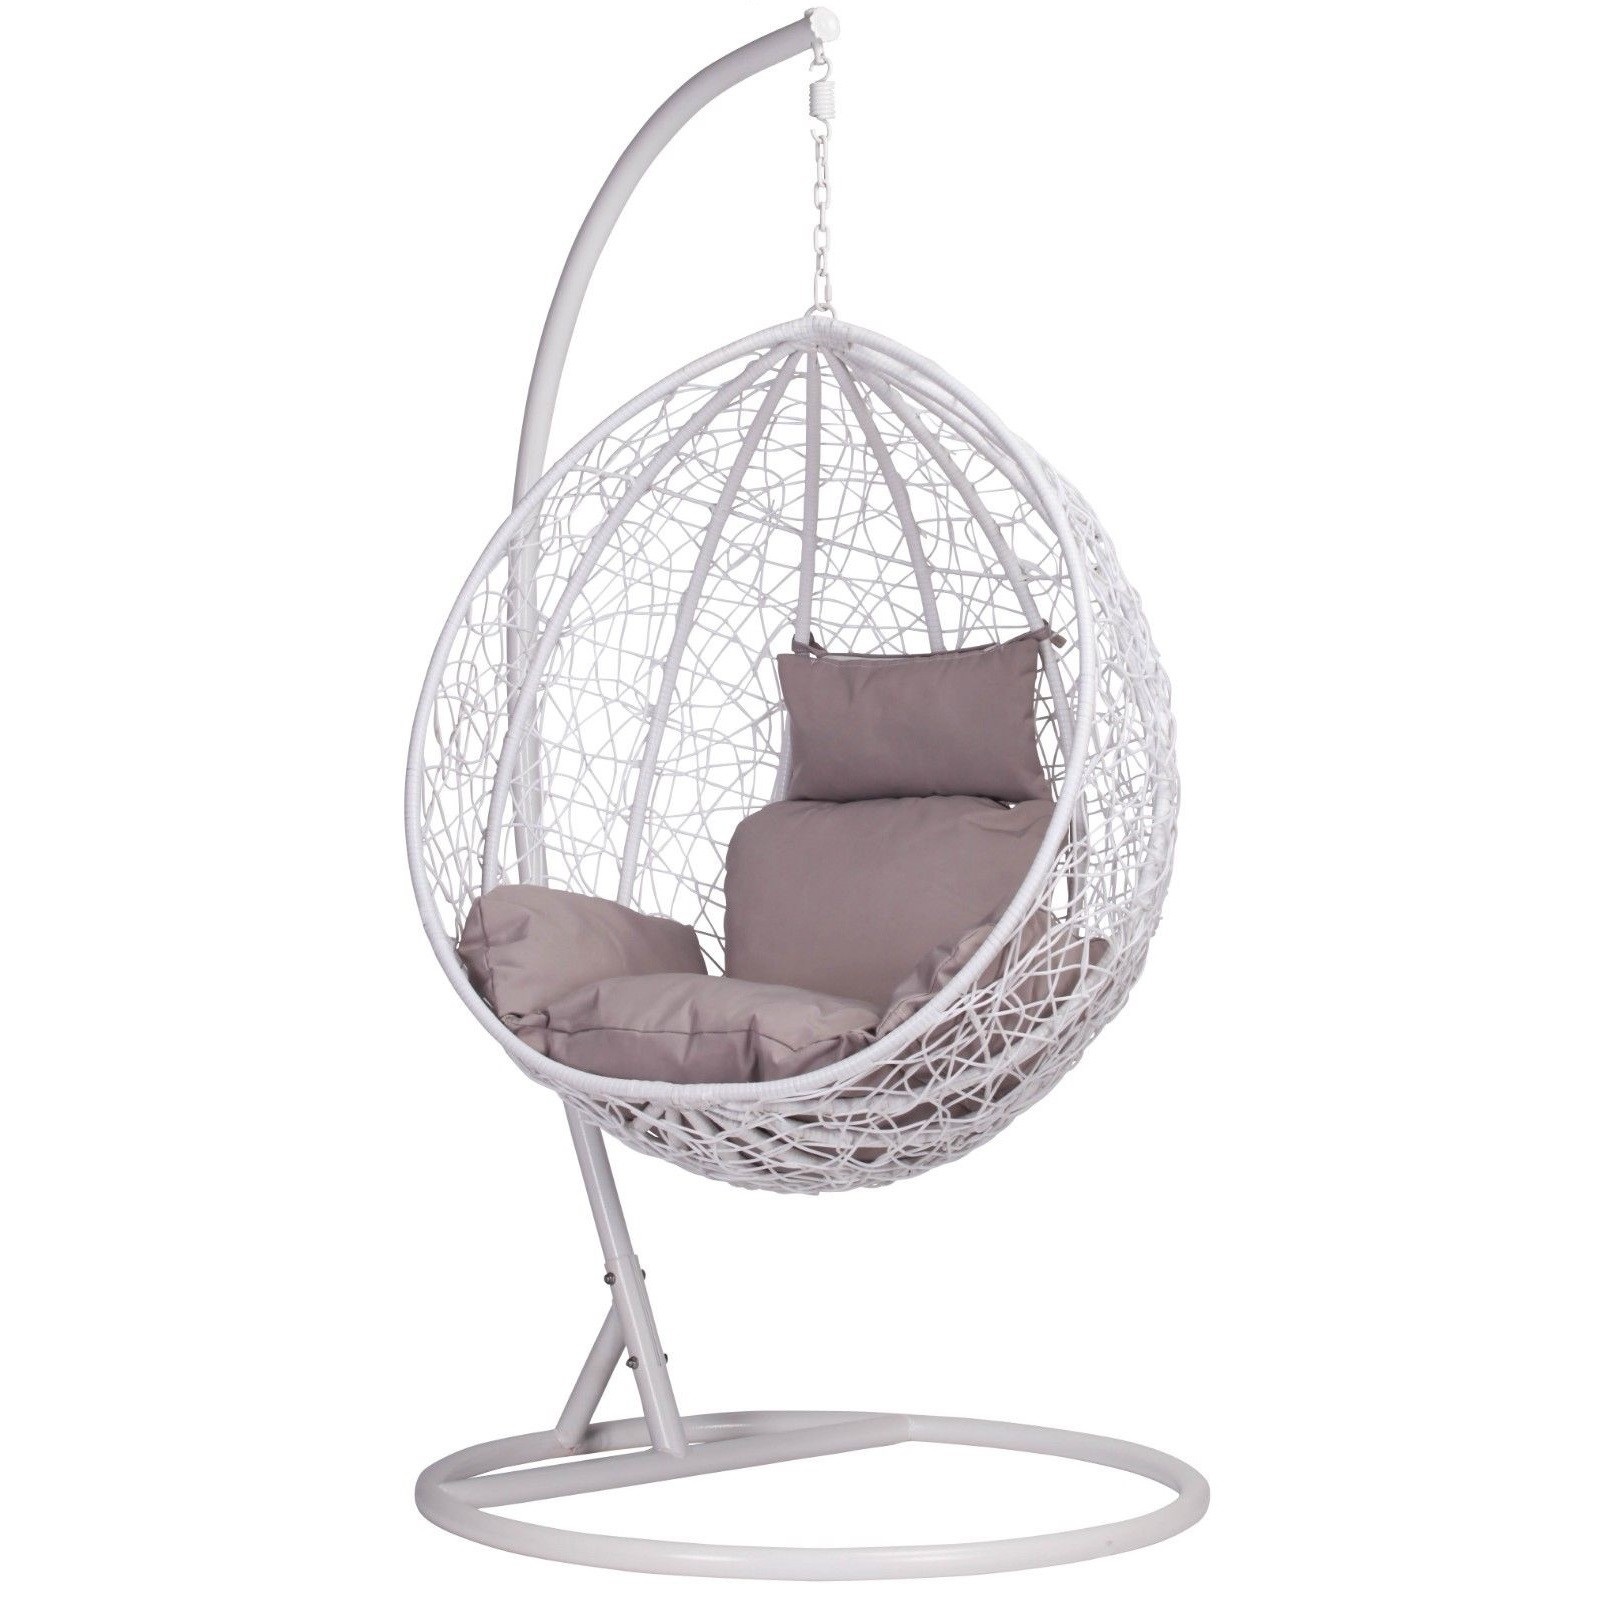 White Rattan Swing Weave Patio Garden Hanging Egg Chair